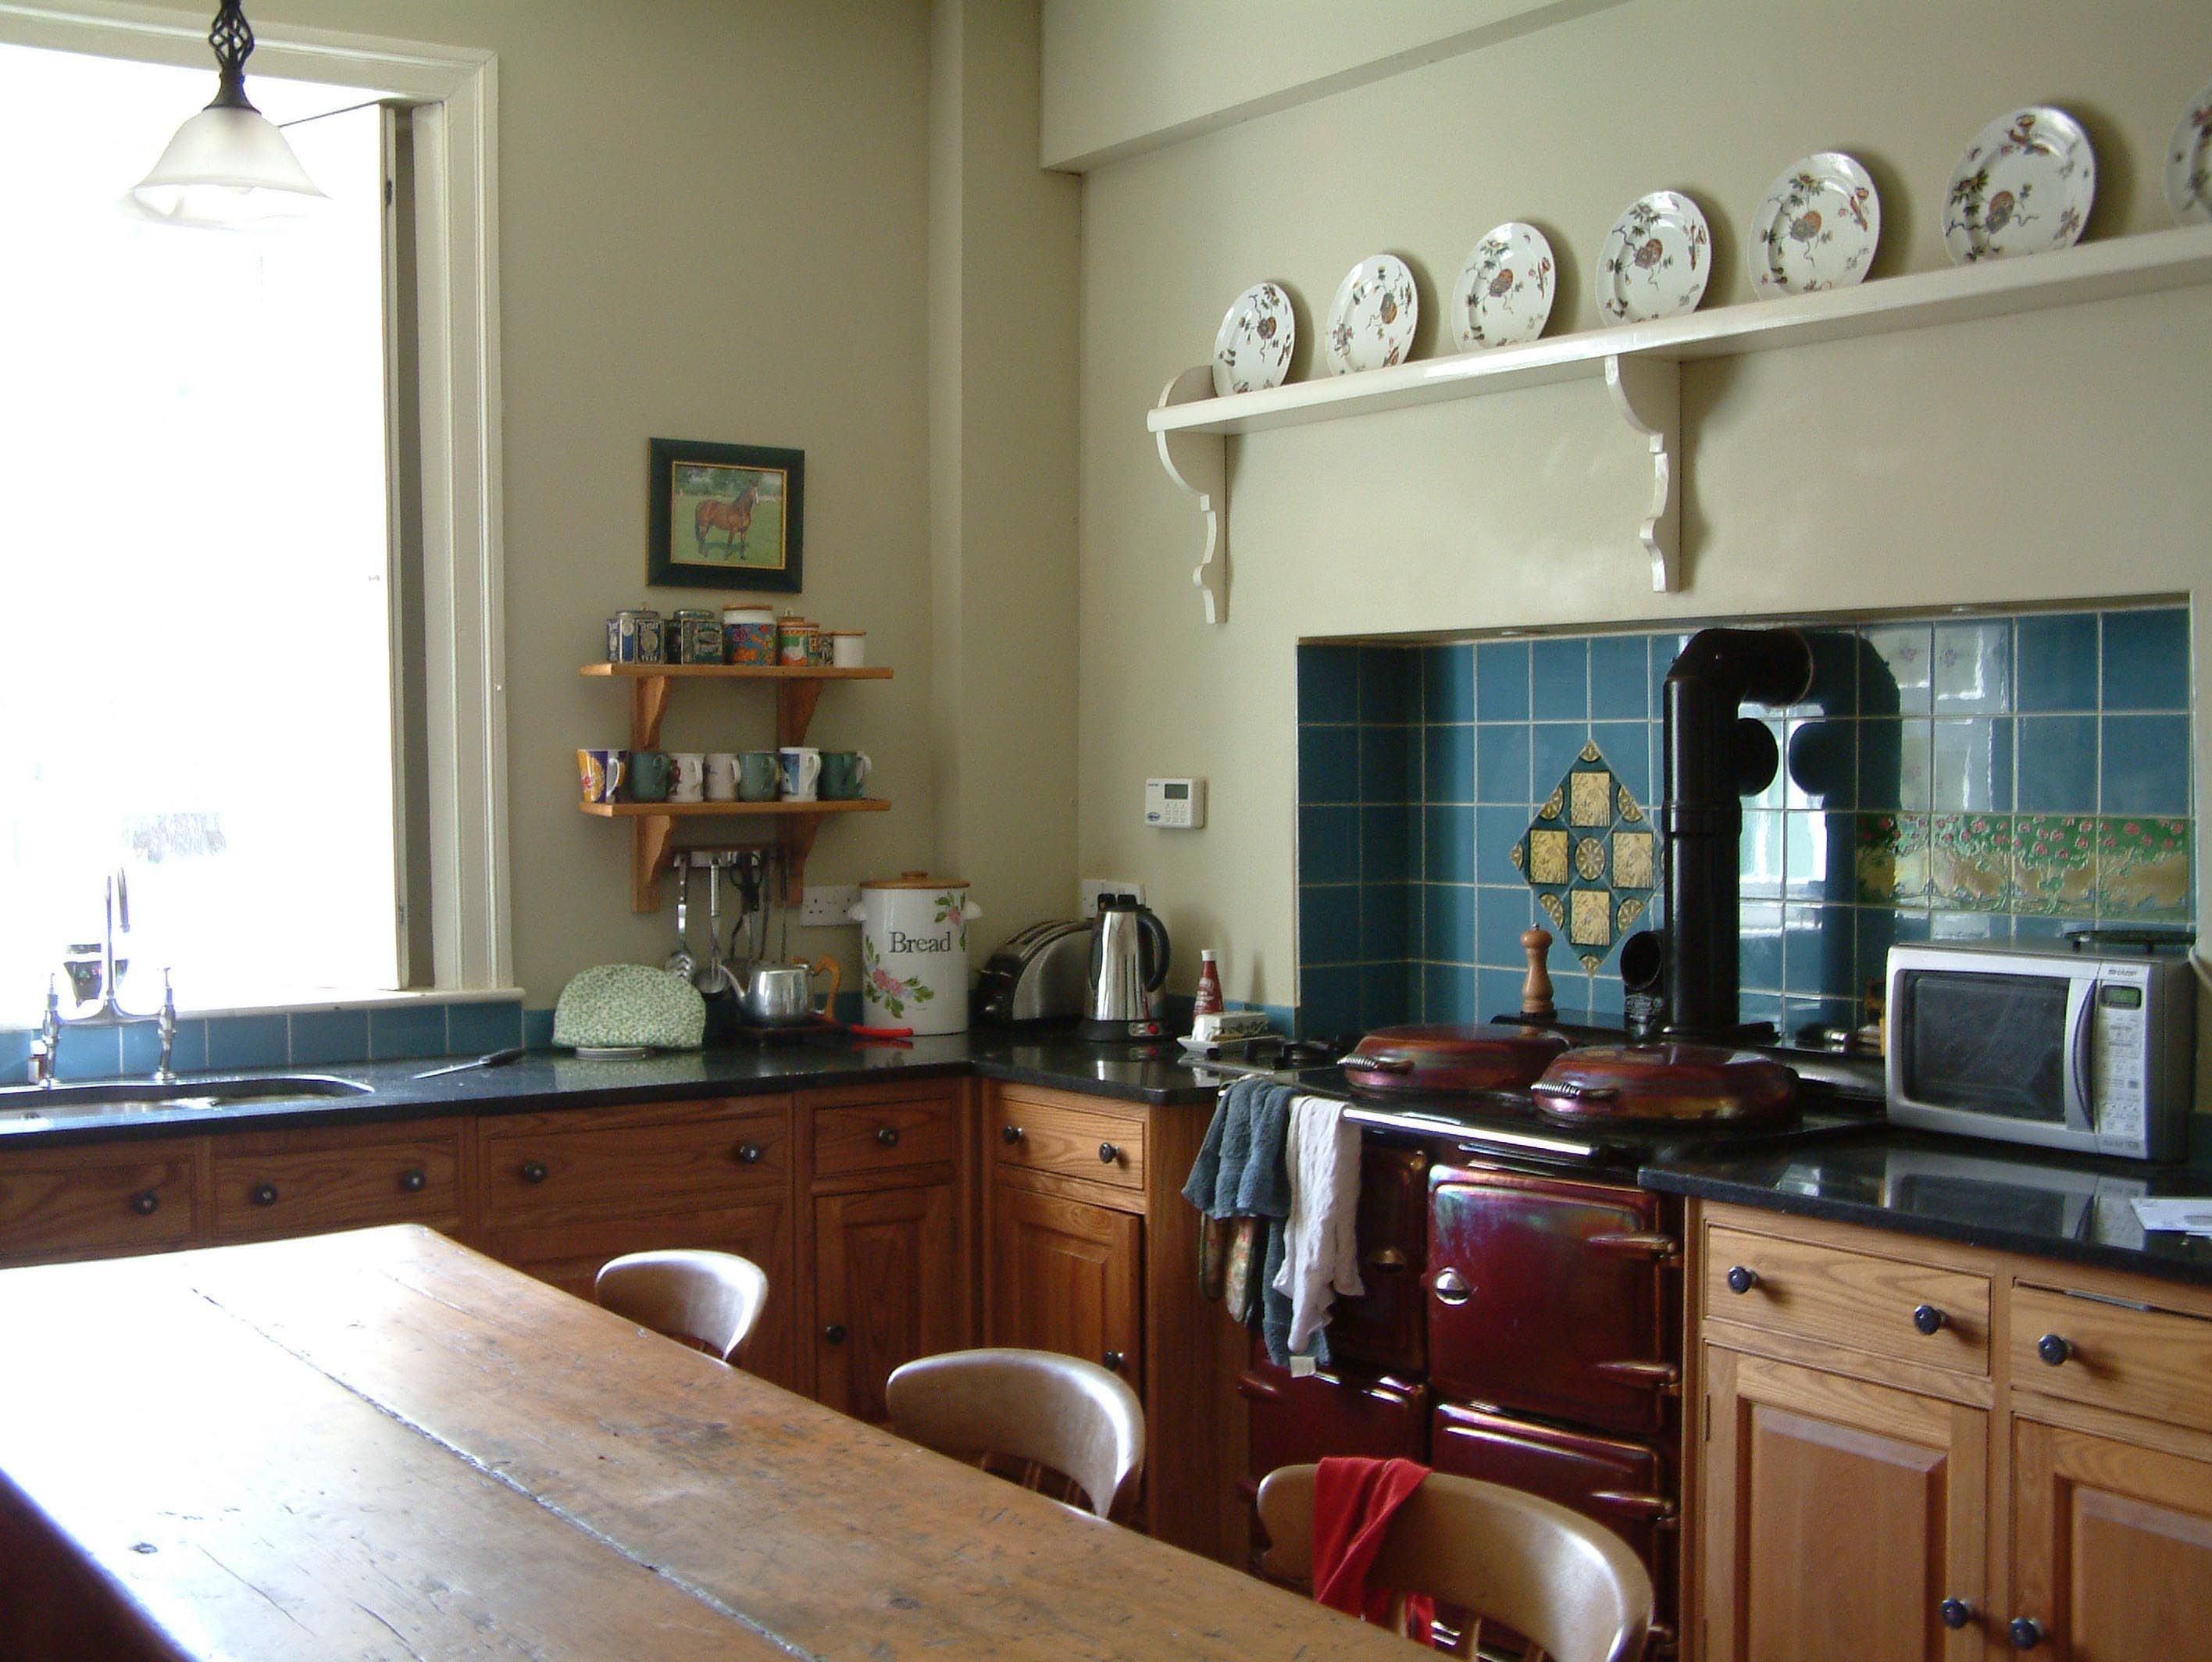 Kitchen Design Victoria This Original Victorian Kitchen With Glass Window And